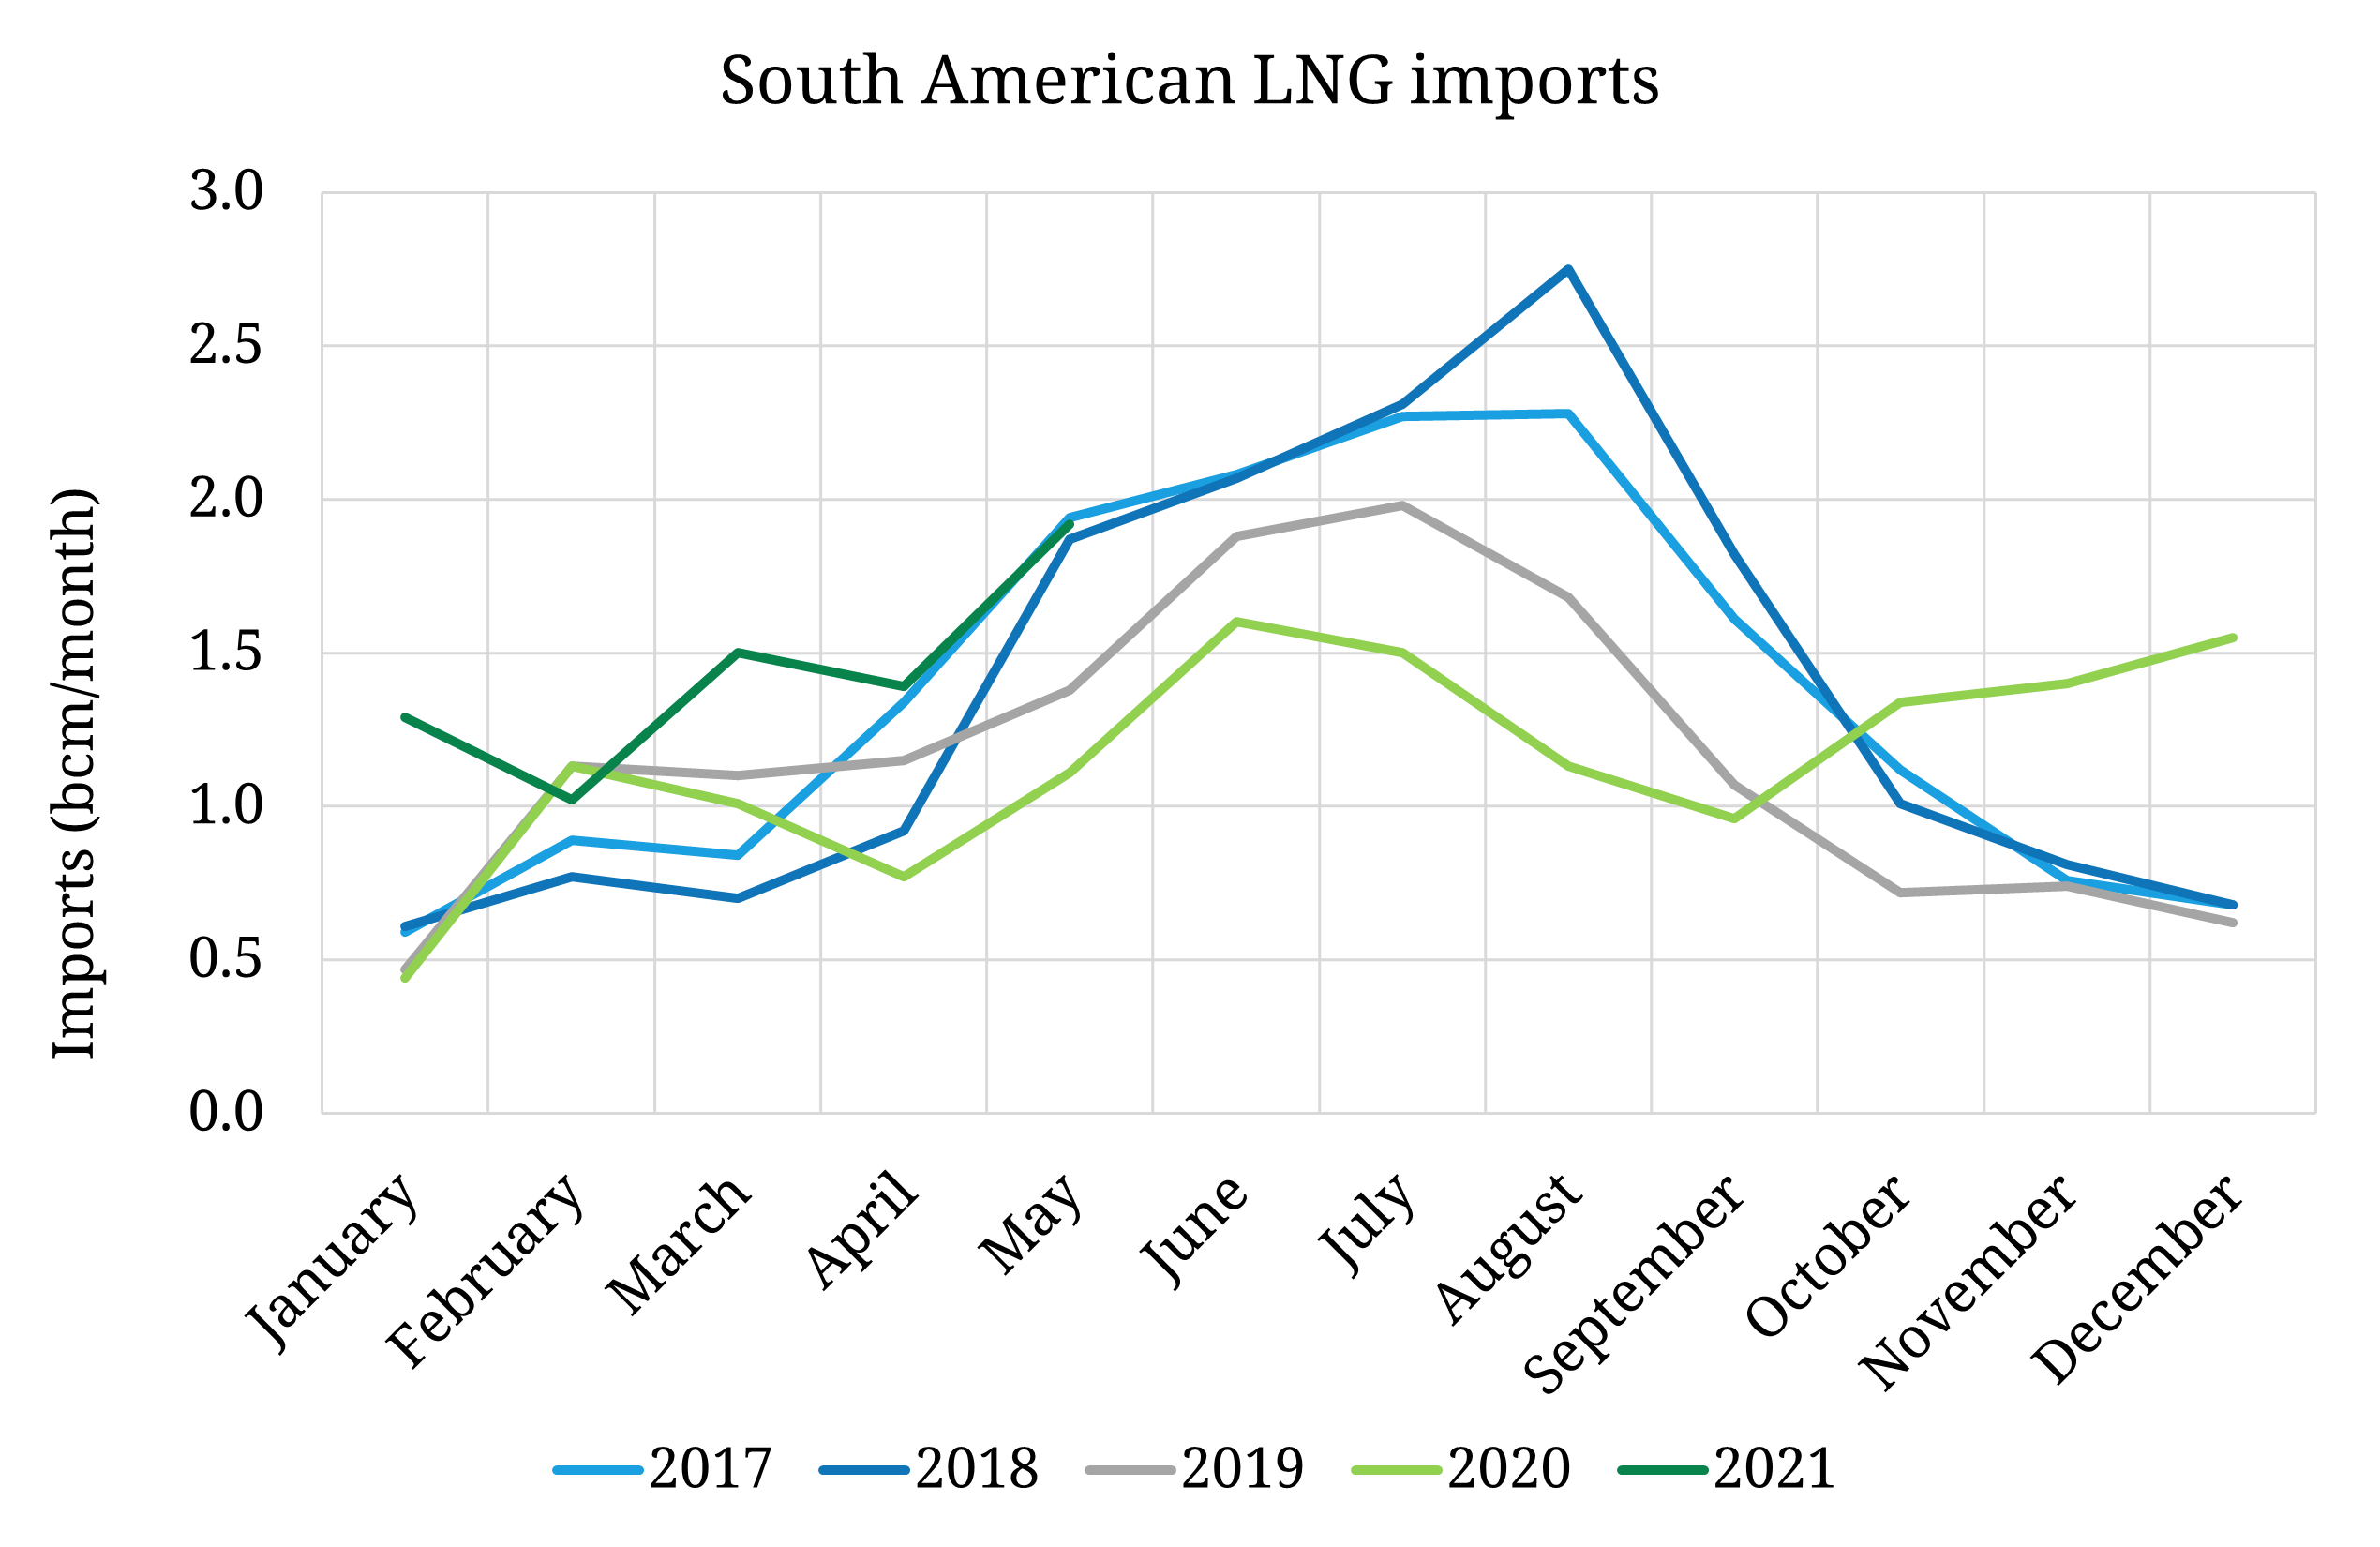 South American LNG imports rebound in 2021